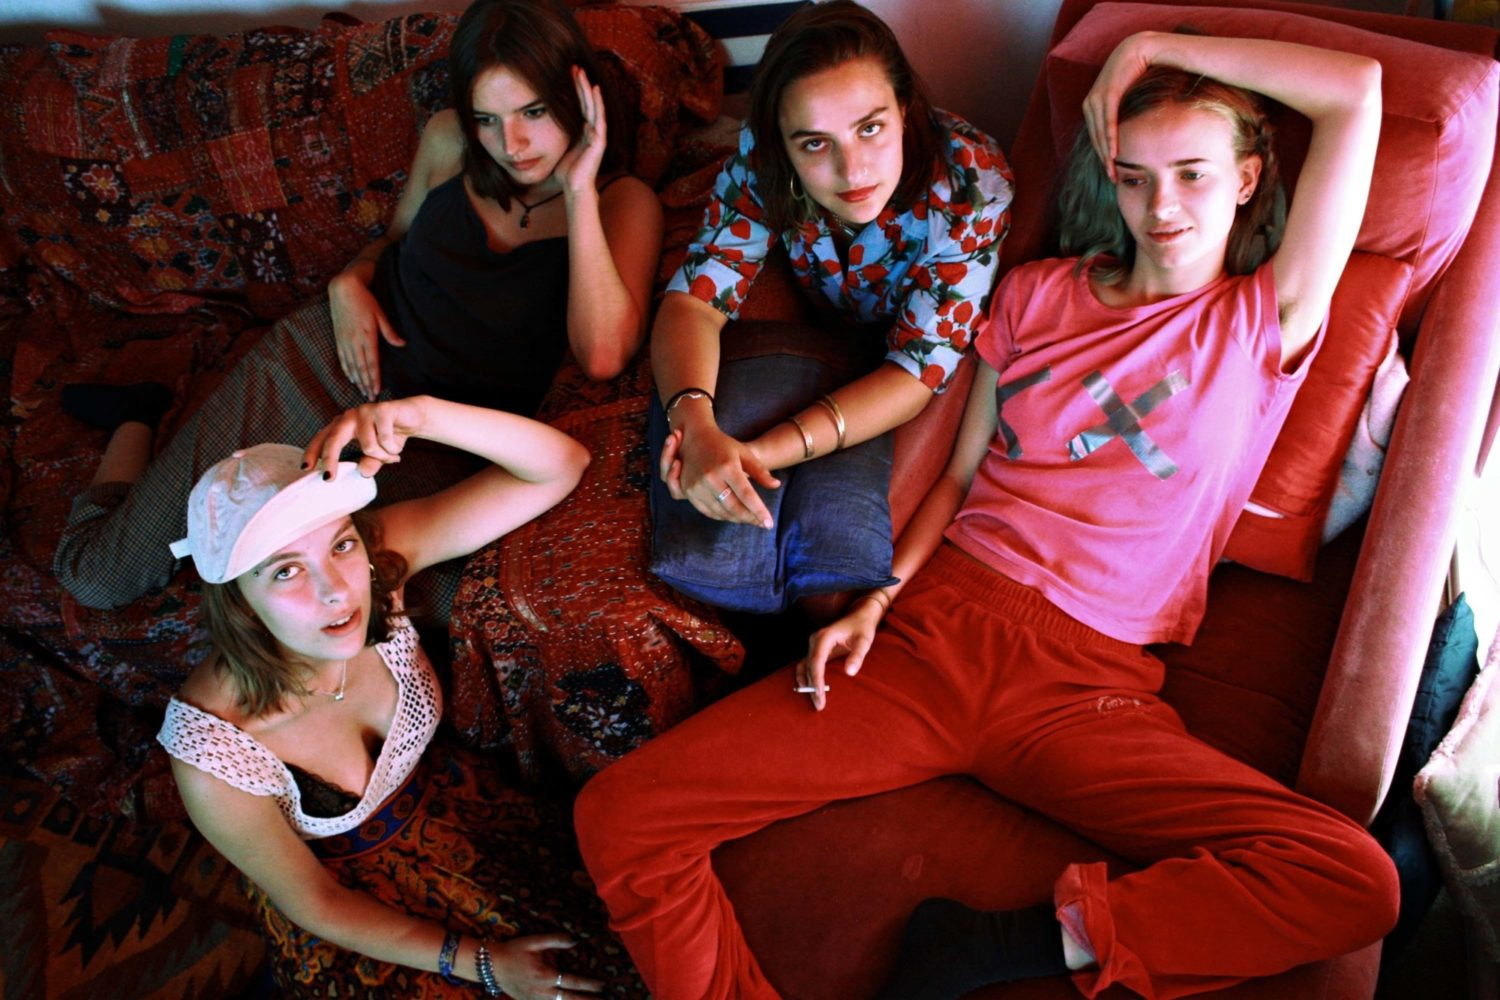 Goat Girl, Sweat, Cosmo Pyke, Girl Ray to play free Hello 2017 London shows